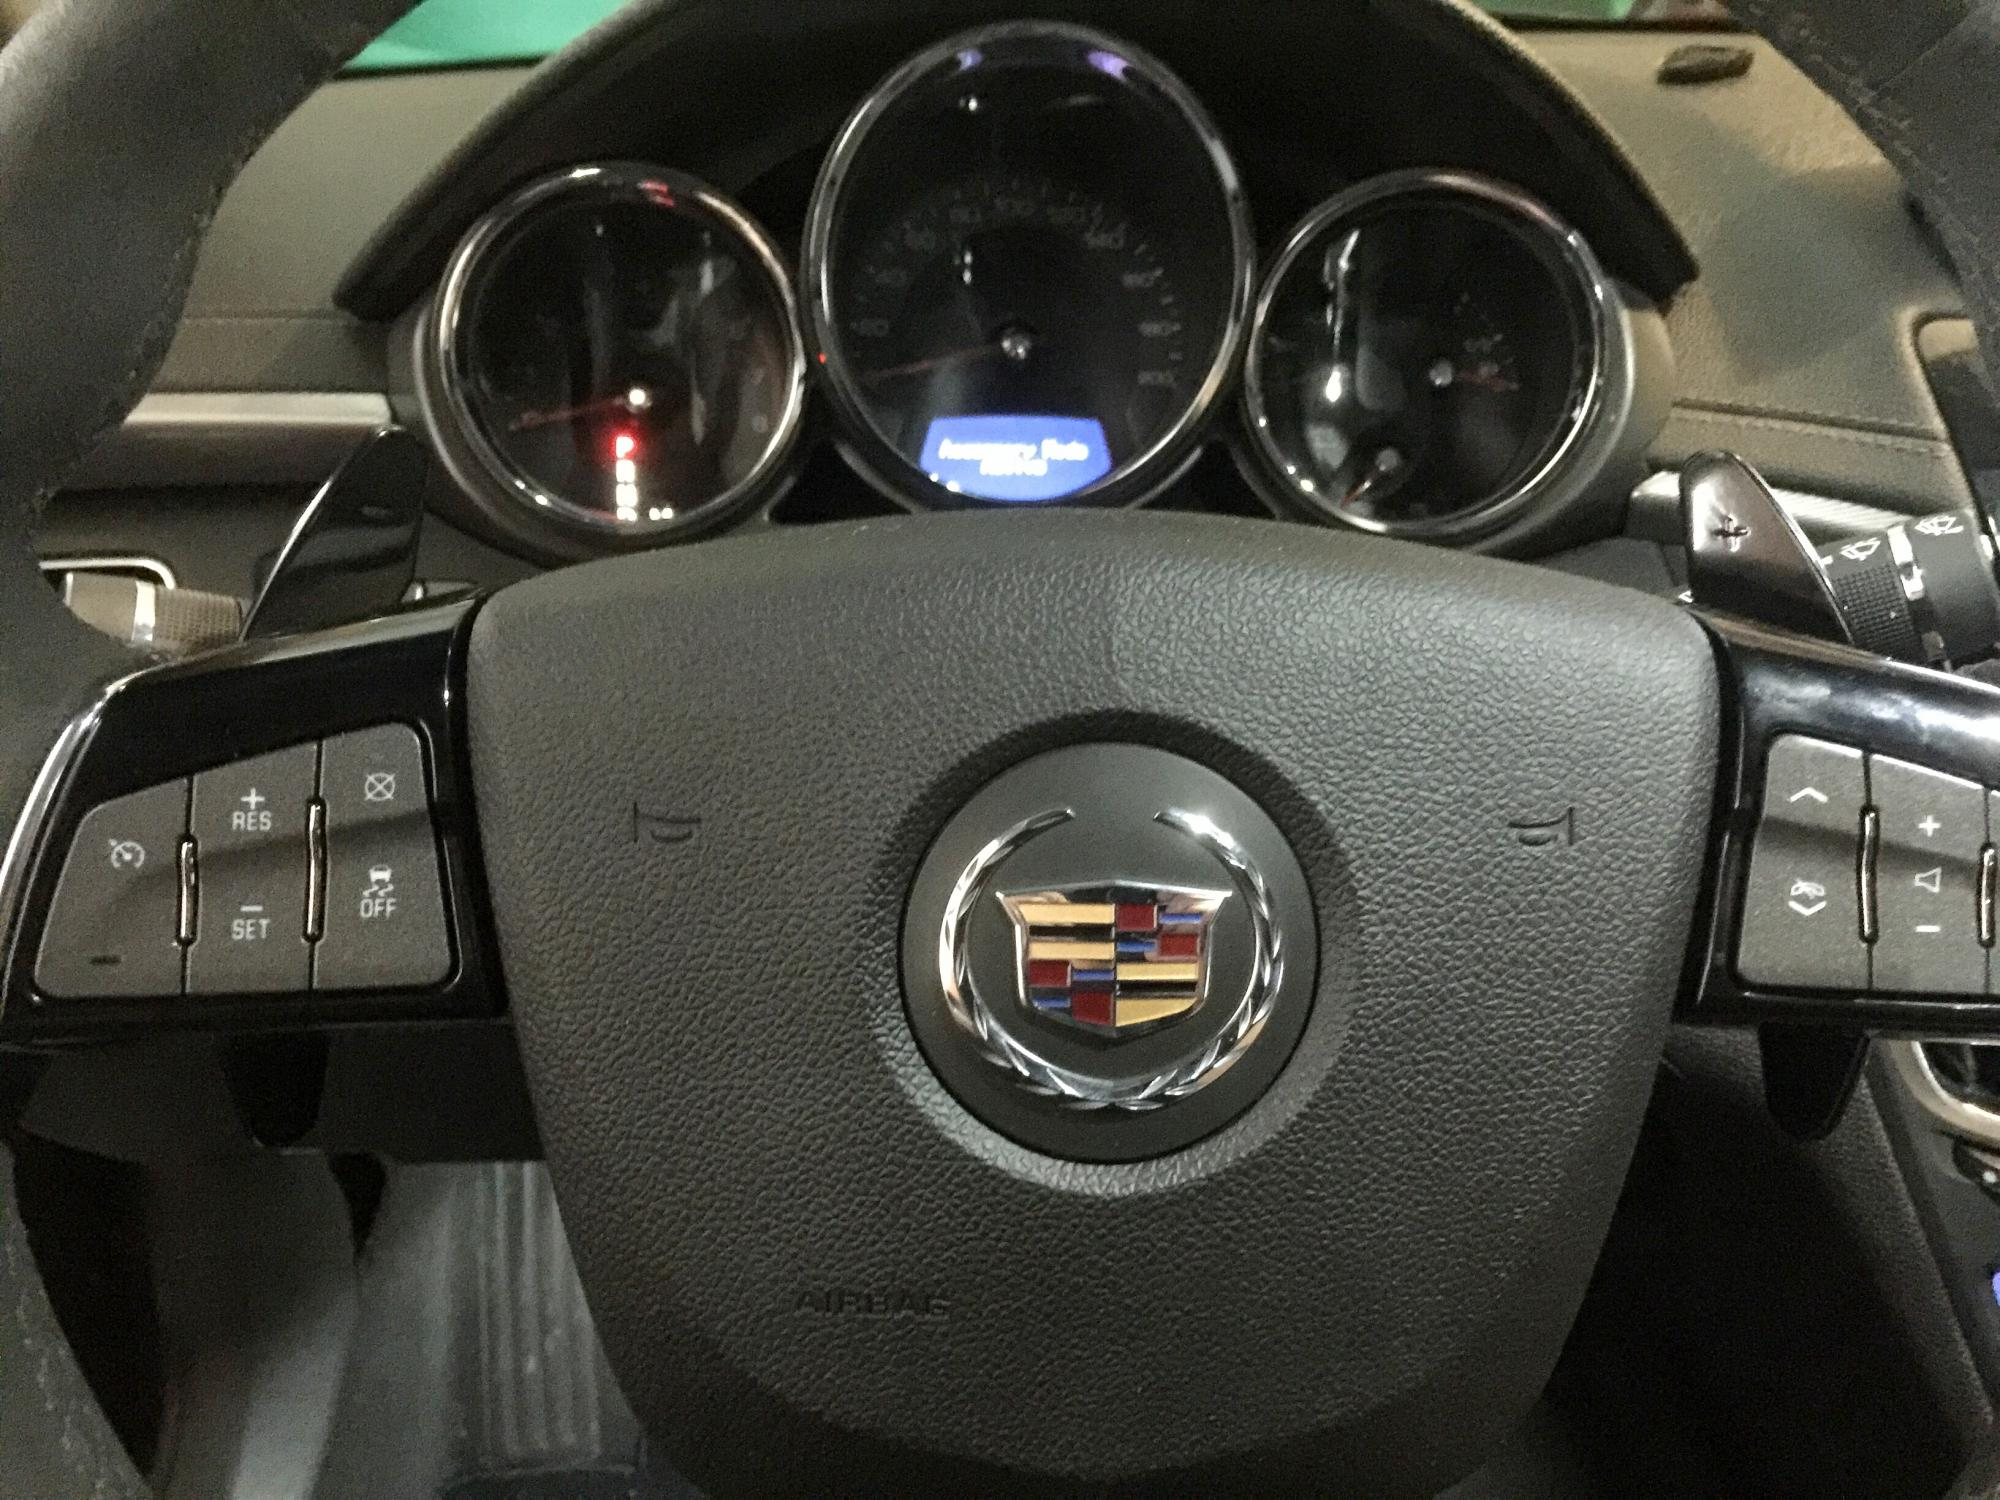 S2T Performance Cadillac CTS/CTS-V Paddle Shifter Group-Buy!-enlight1.jpg